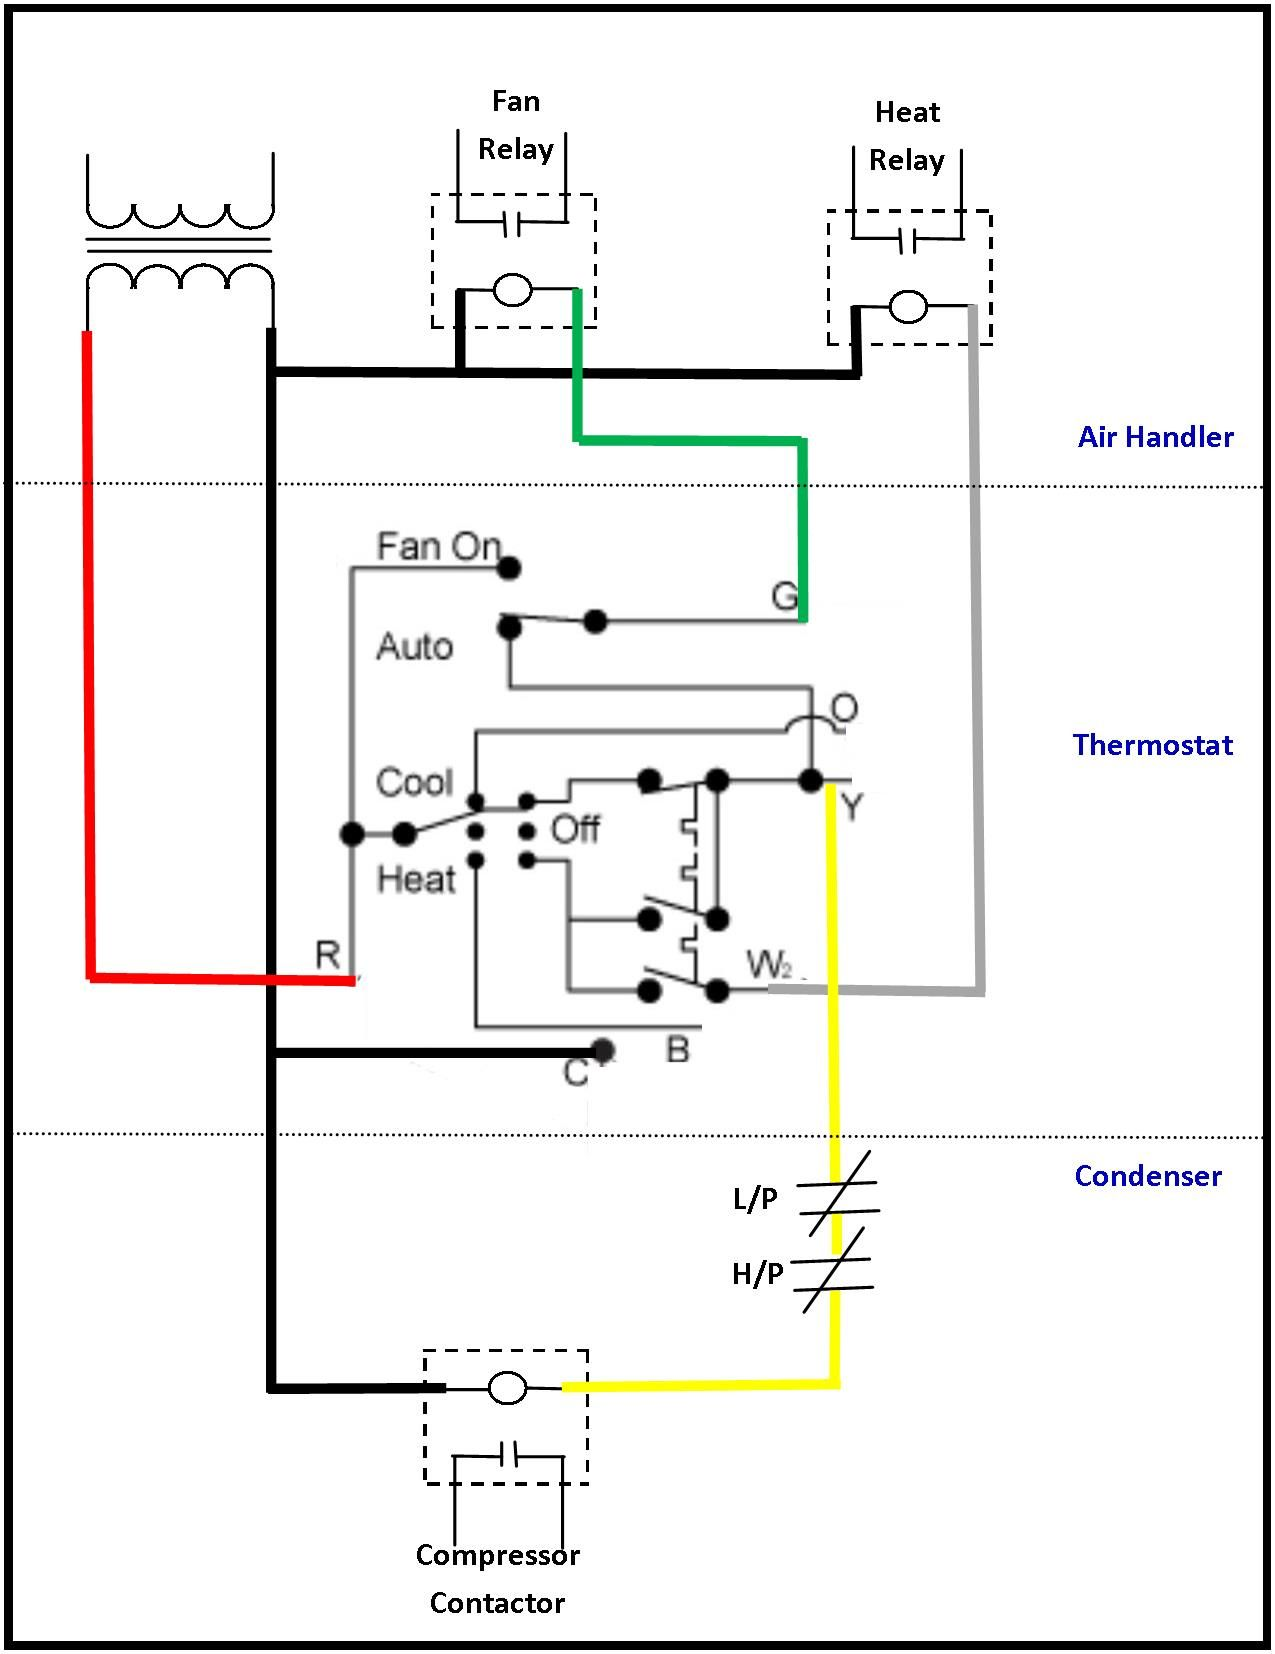 24 Volt Transformer Wiring Diagram | Thermostat wiring, Electrical circuit  diagram, Ac wiring | Hvac Fan Relay Wiring |  | Pinterest